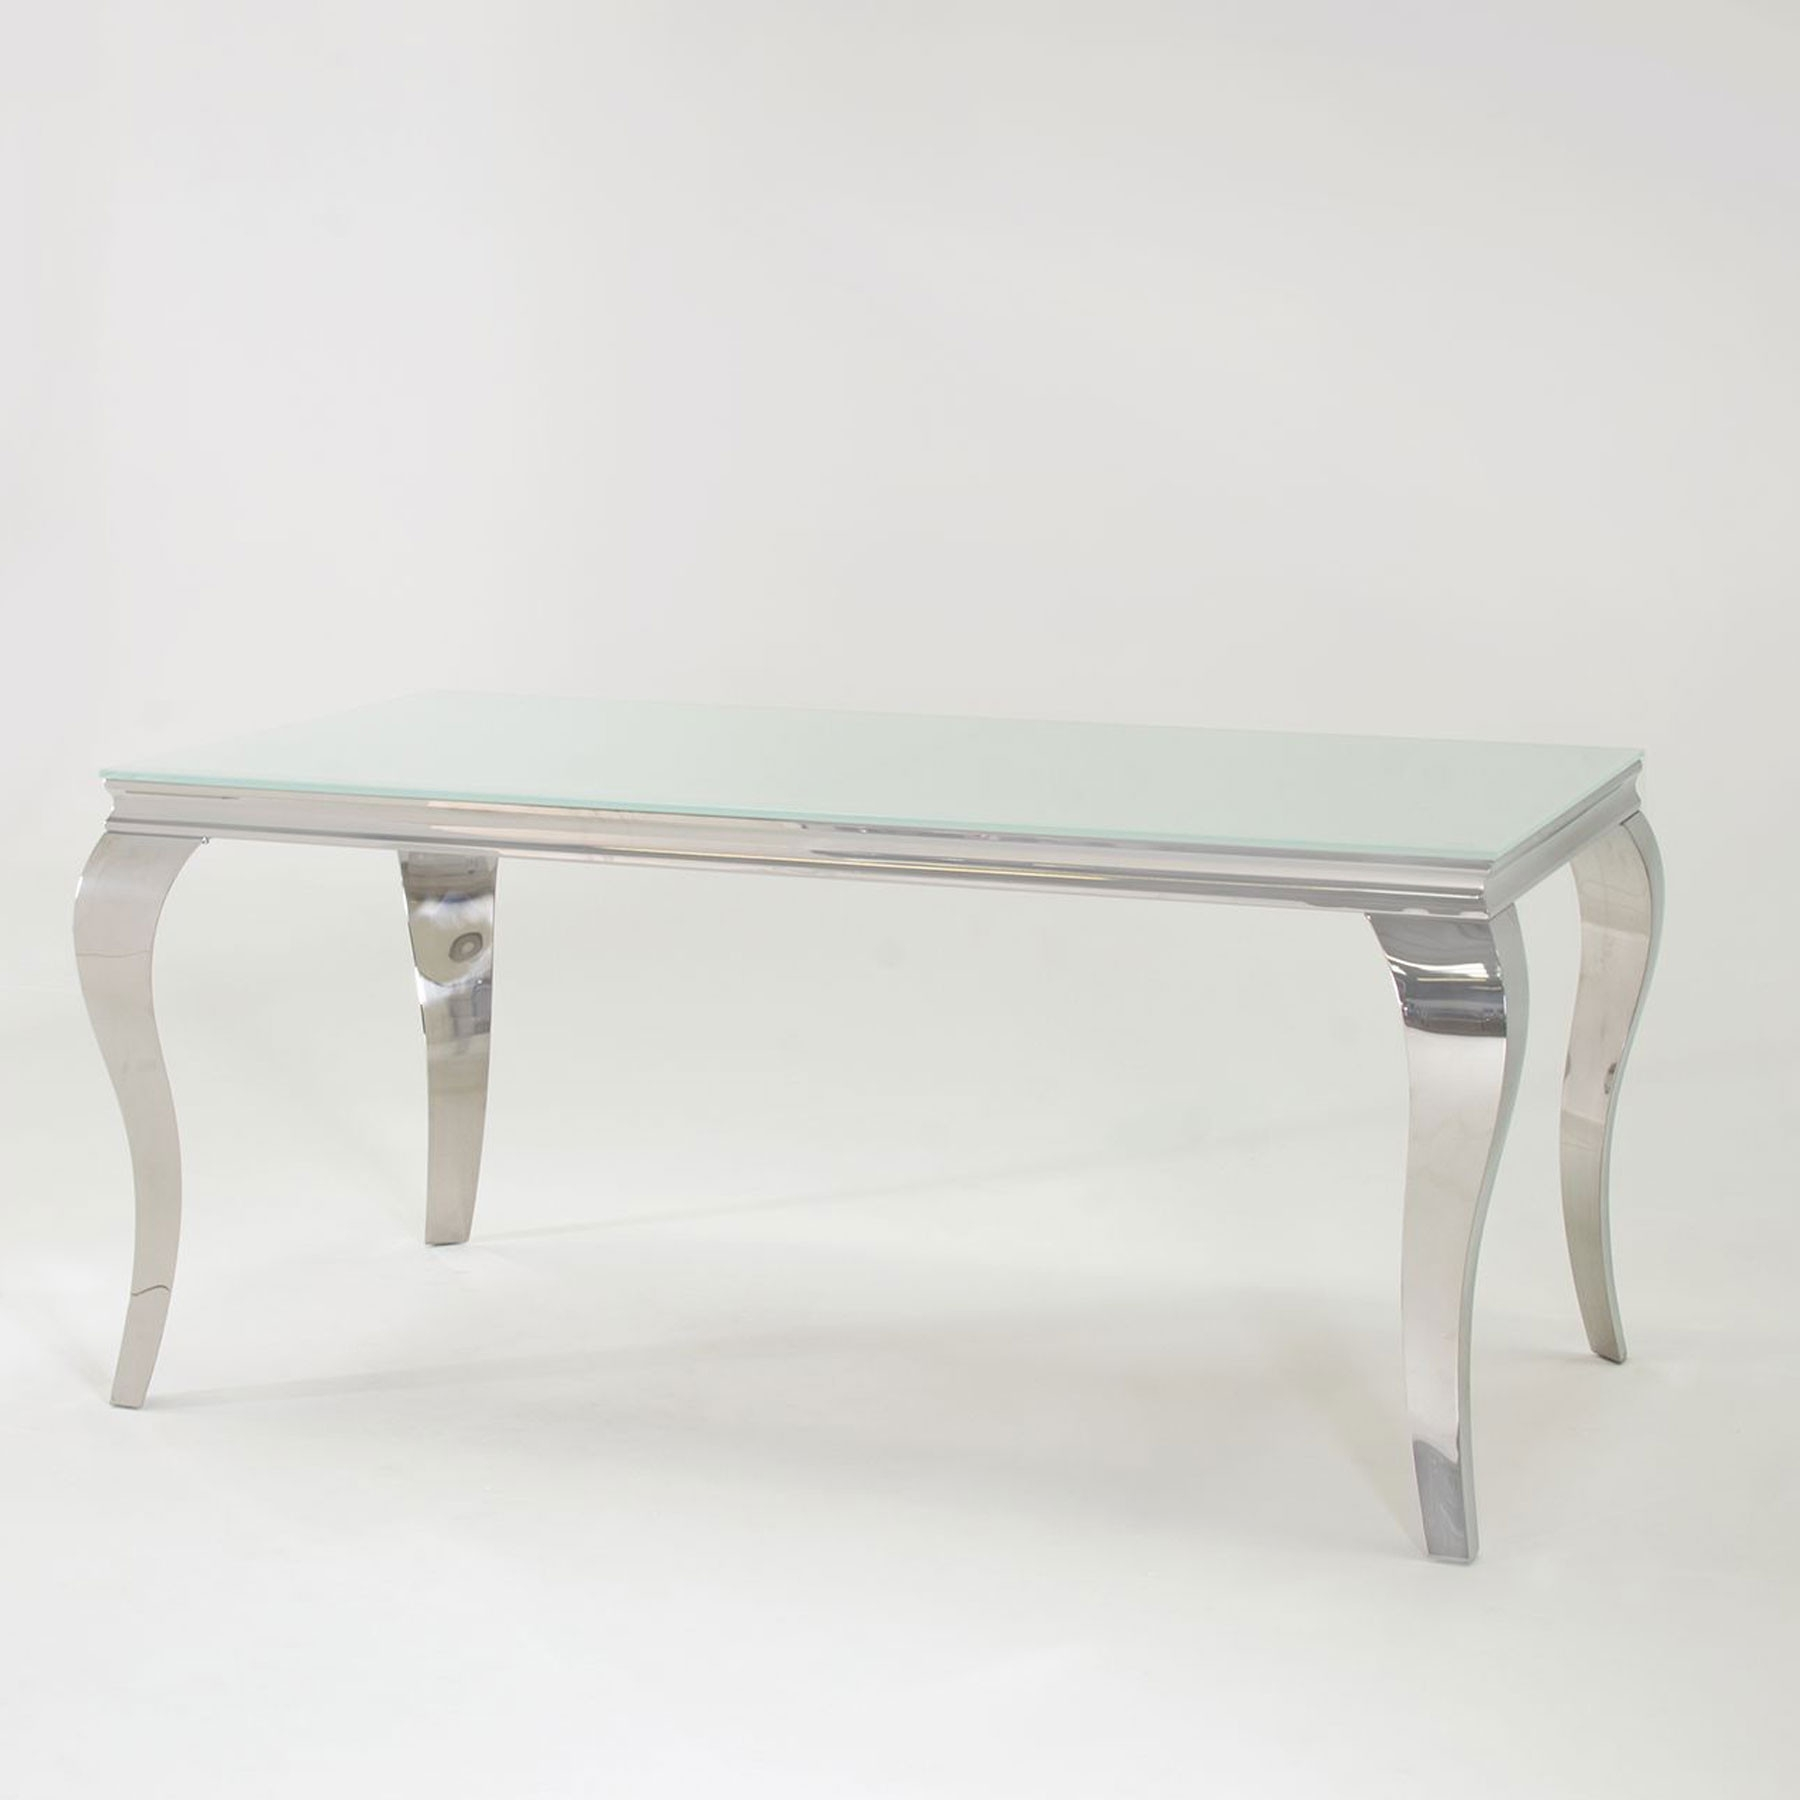 White Glass Dining Tables And Chairs With Regard To Most Up To Date Fadenza Small White Glass Dining Table & 4 Silver Chairs With (View 24 of 25)